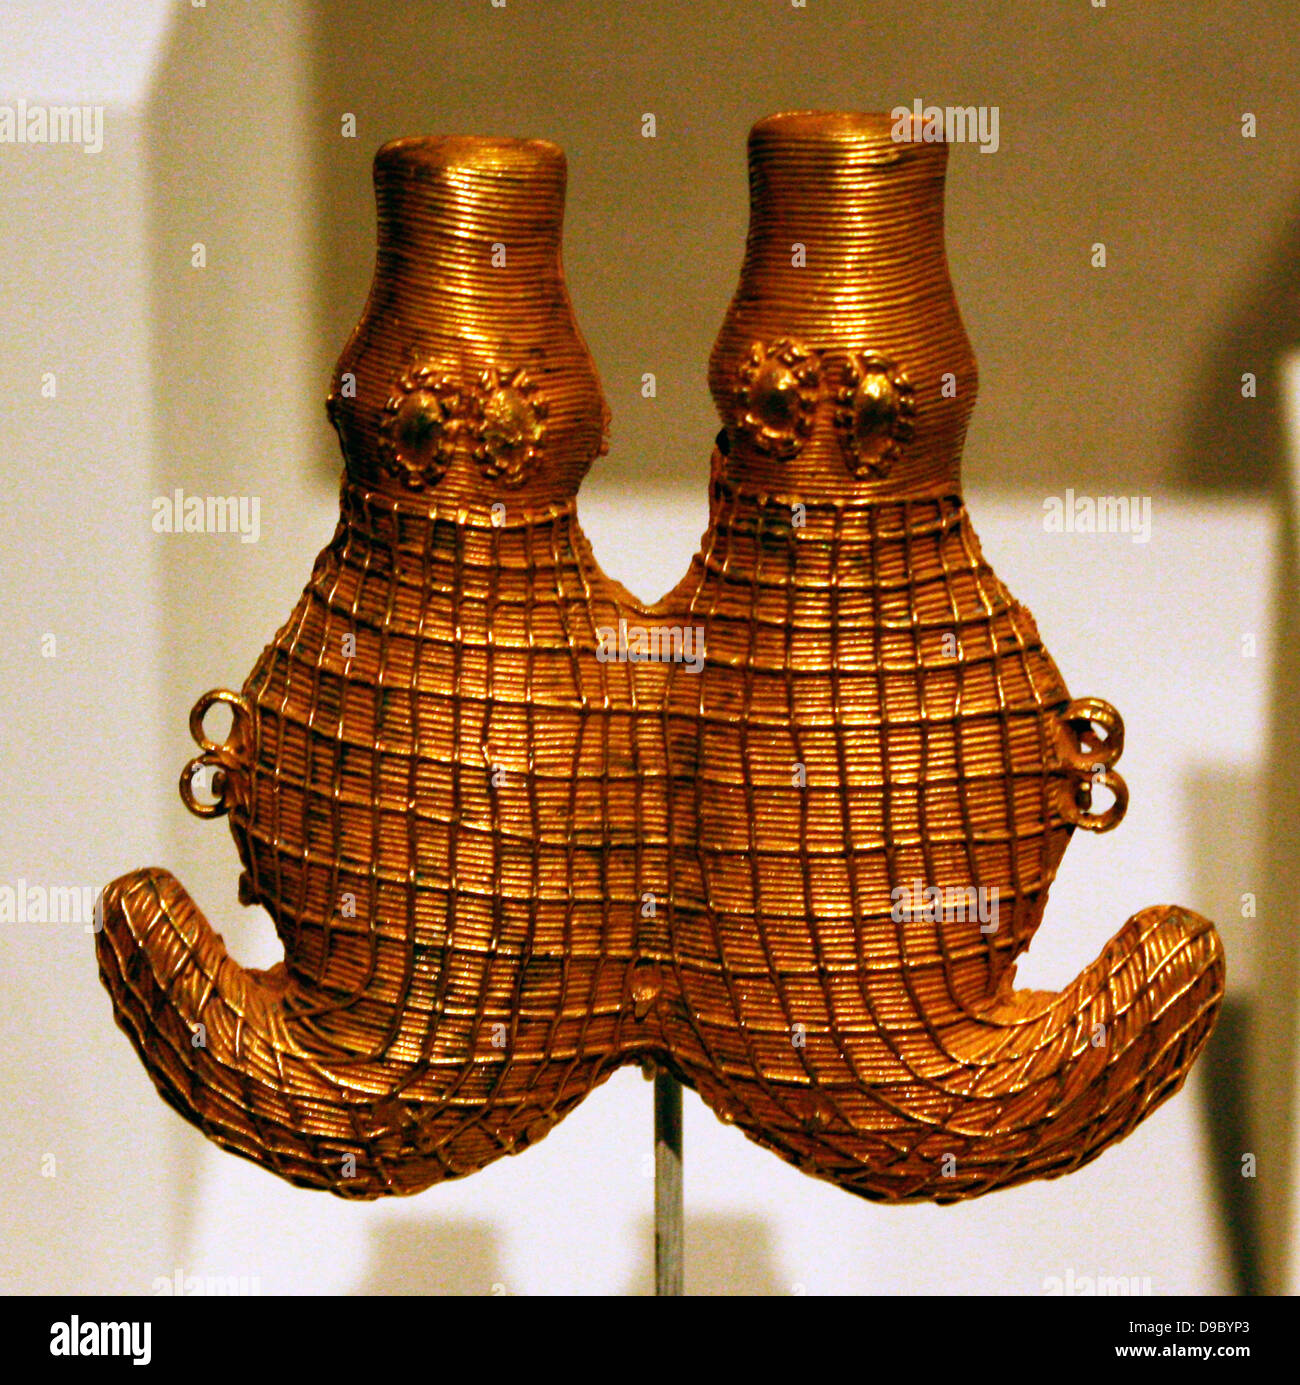 Double crocodile - Code d'Ivoire, 19th-20th century.  Gold - Stock Image